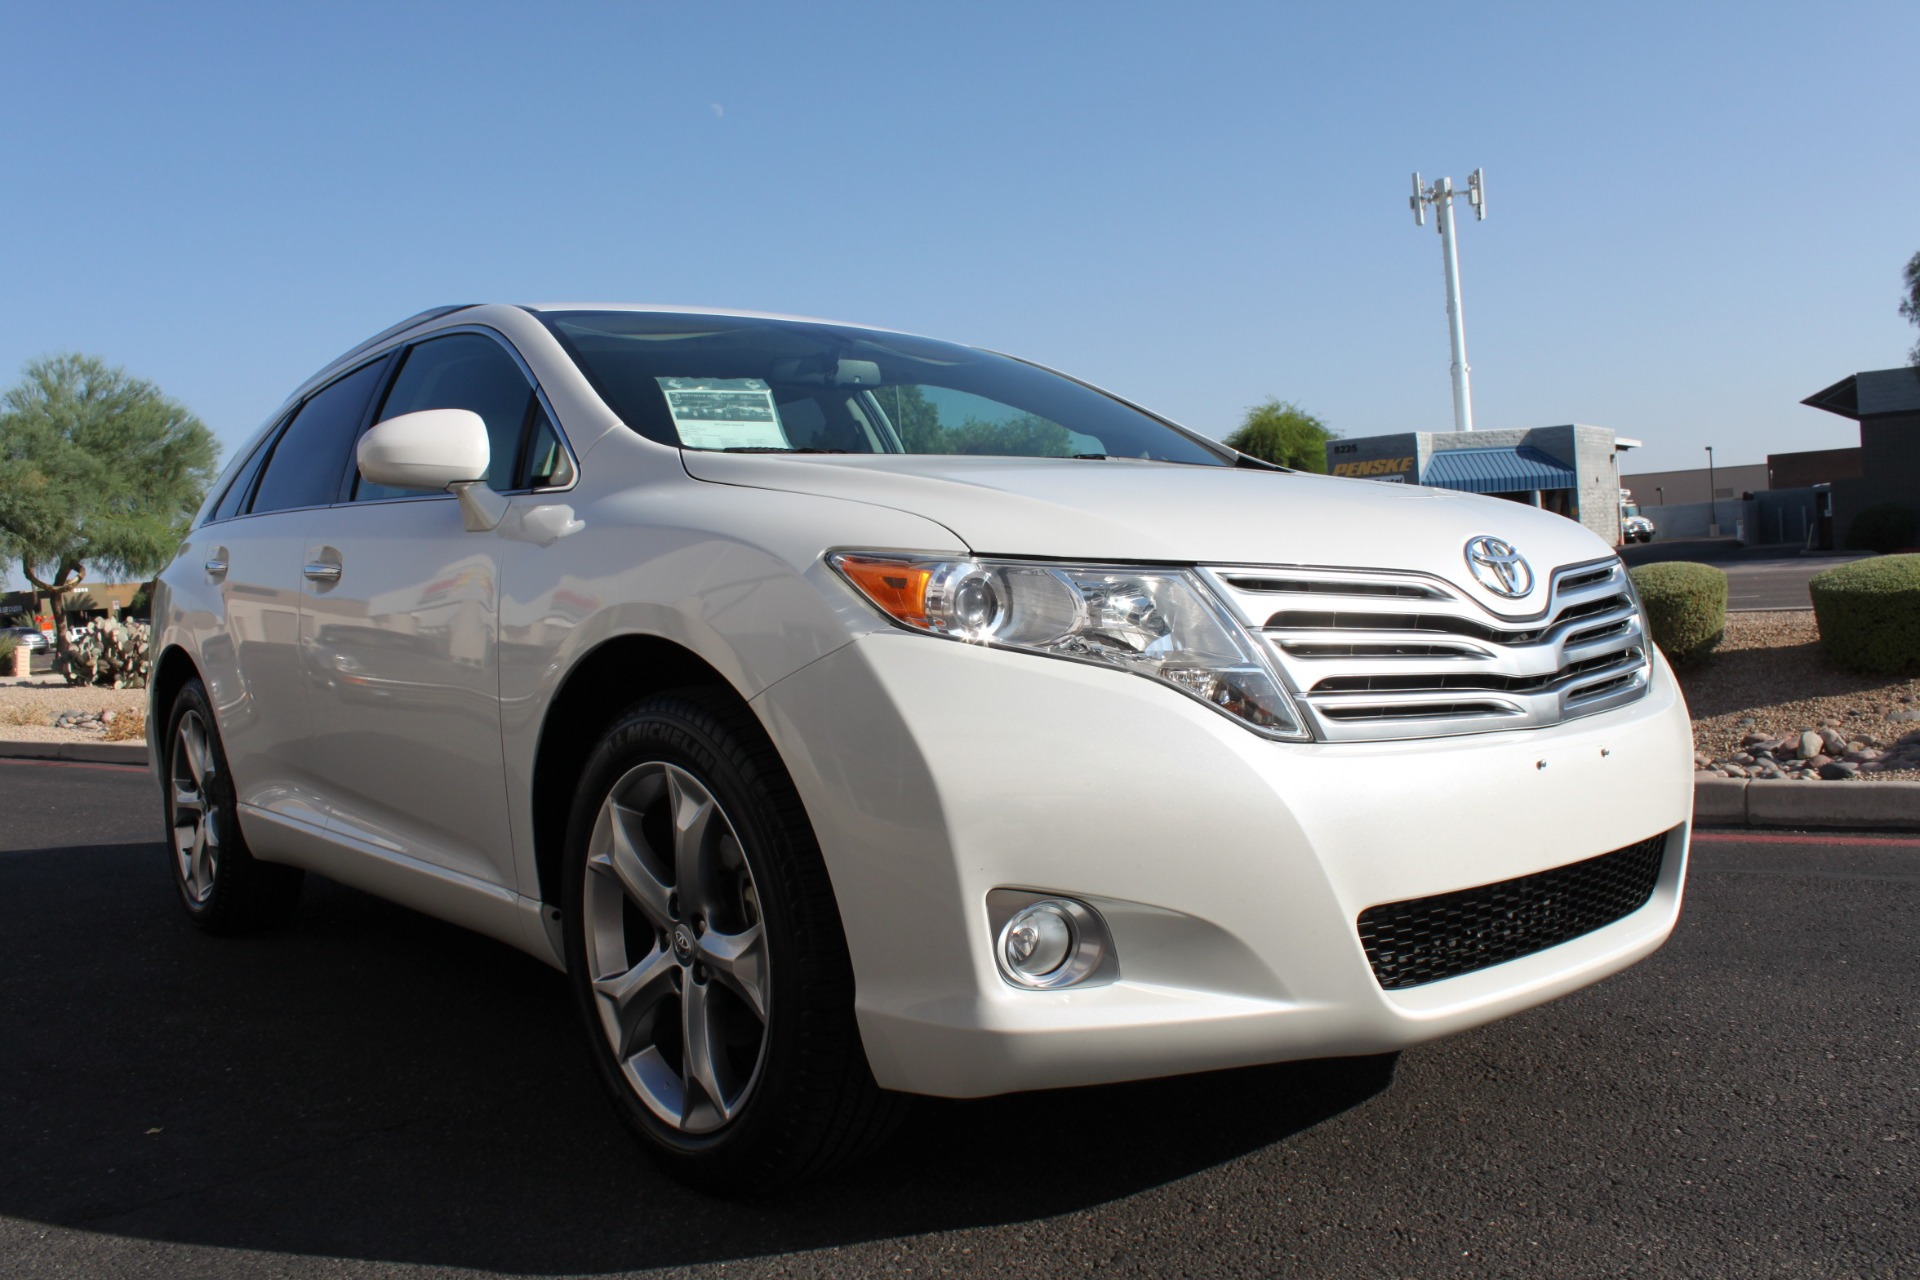 Used-2012-Toyota-Venza-XLE-Mercedes-Benz